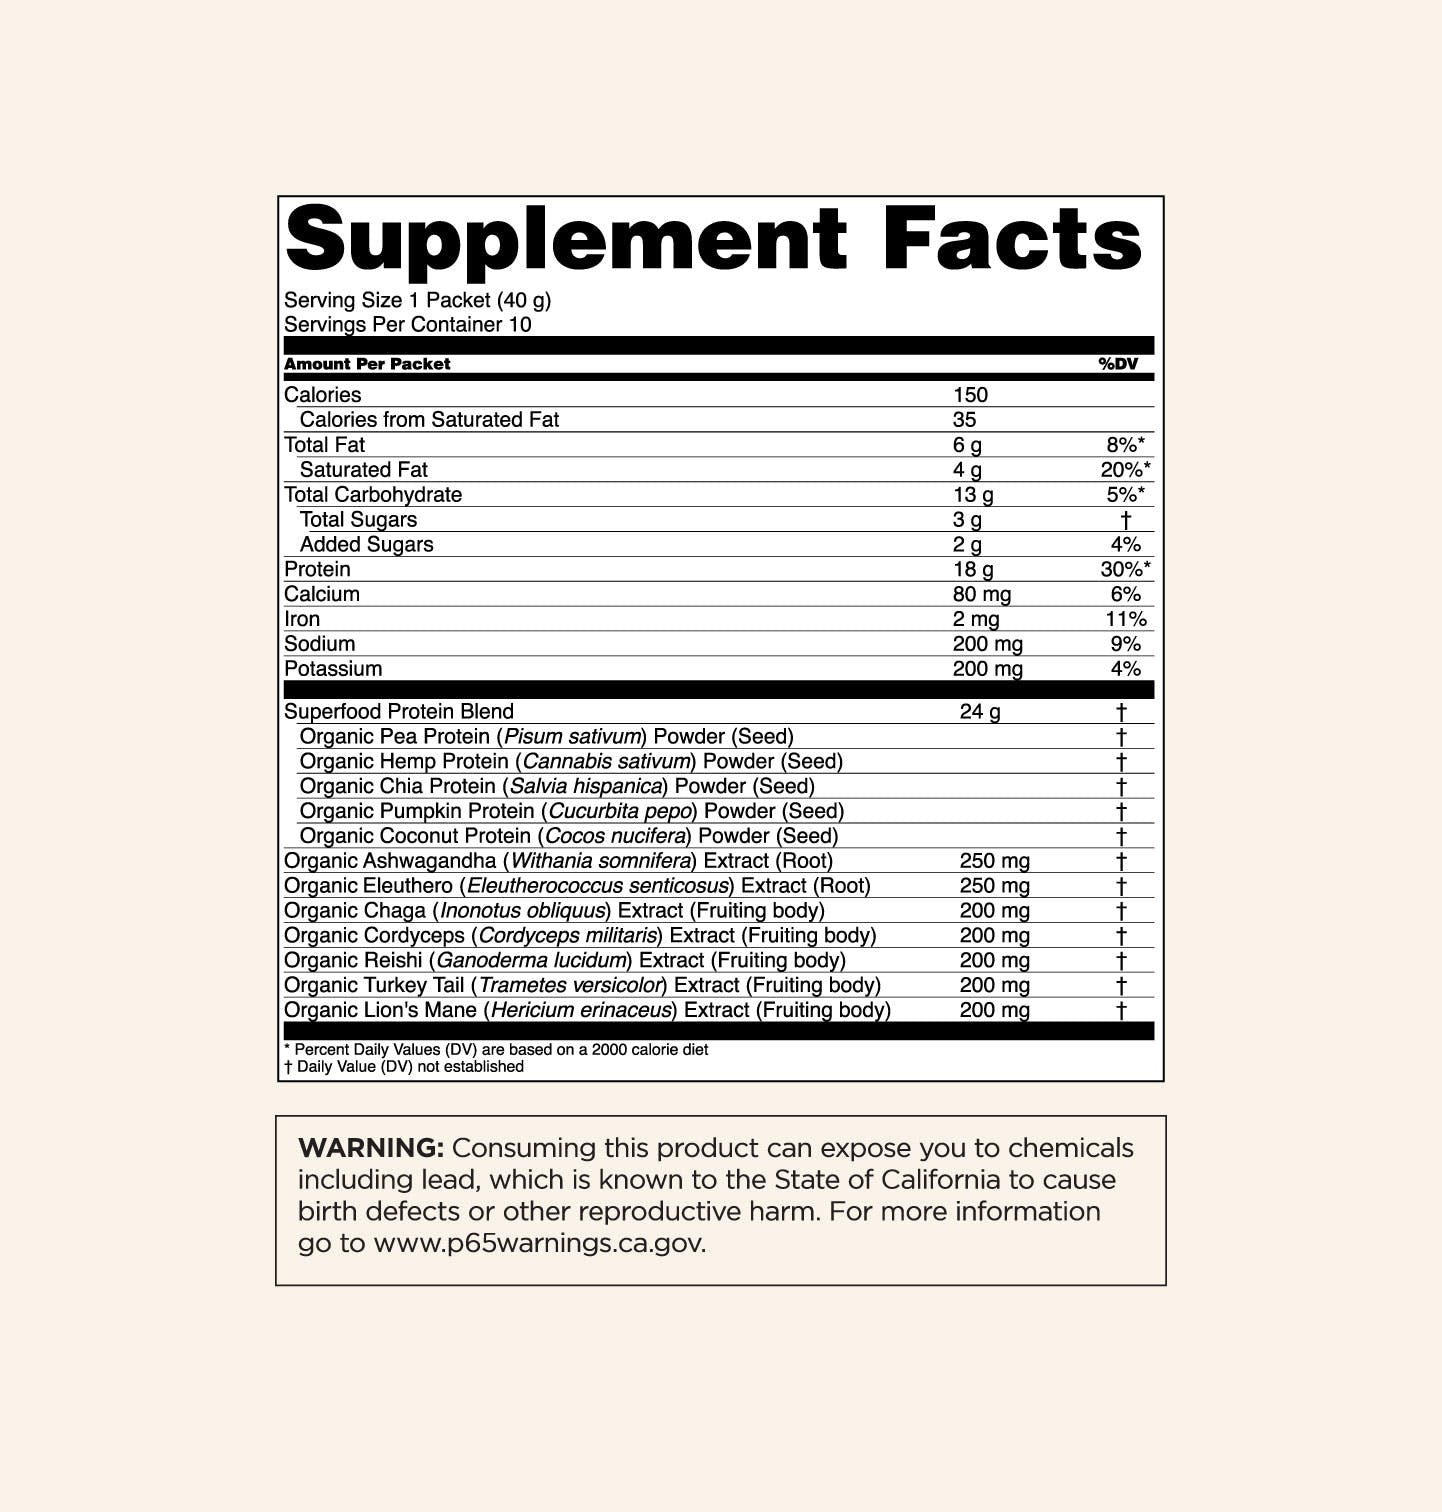 Supplements Facts Panel